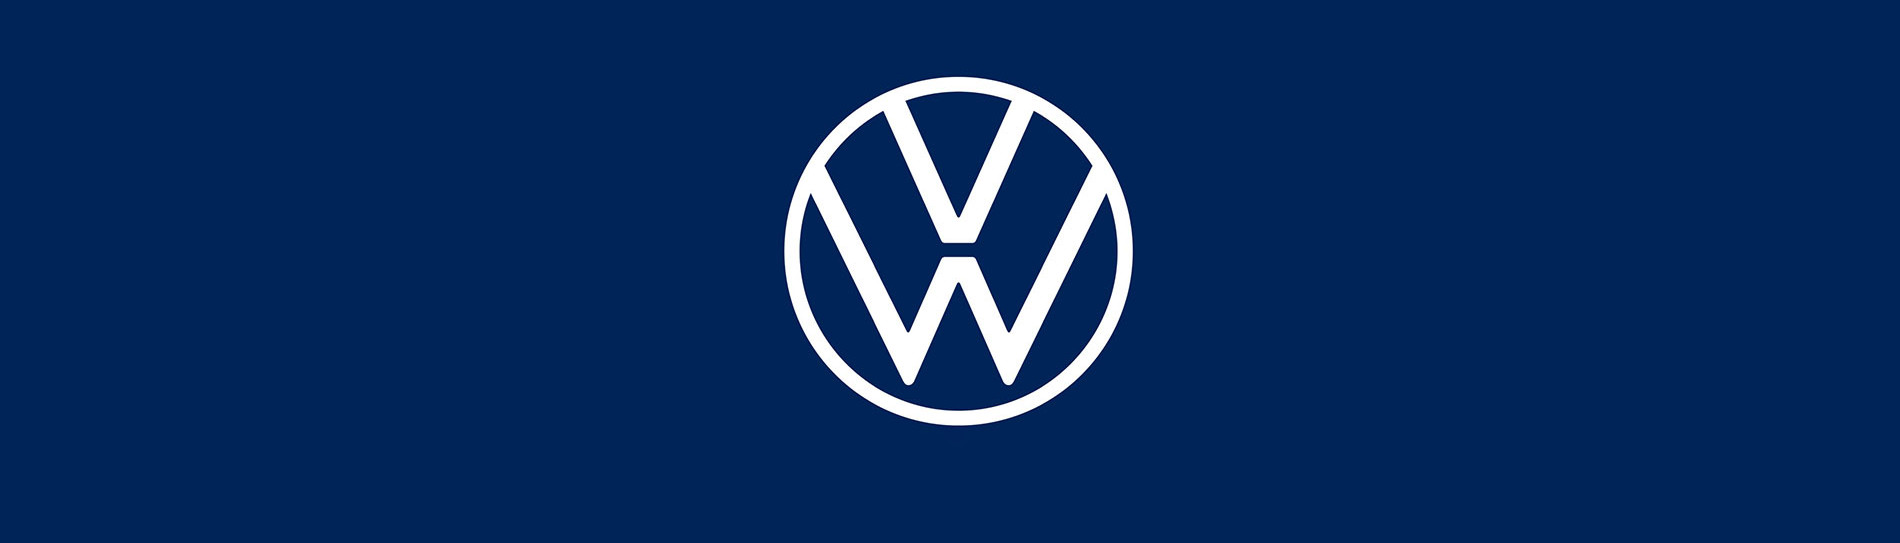 Volkswagen Group Homepage